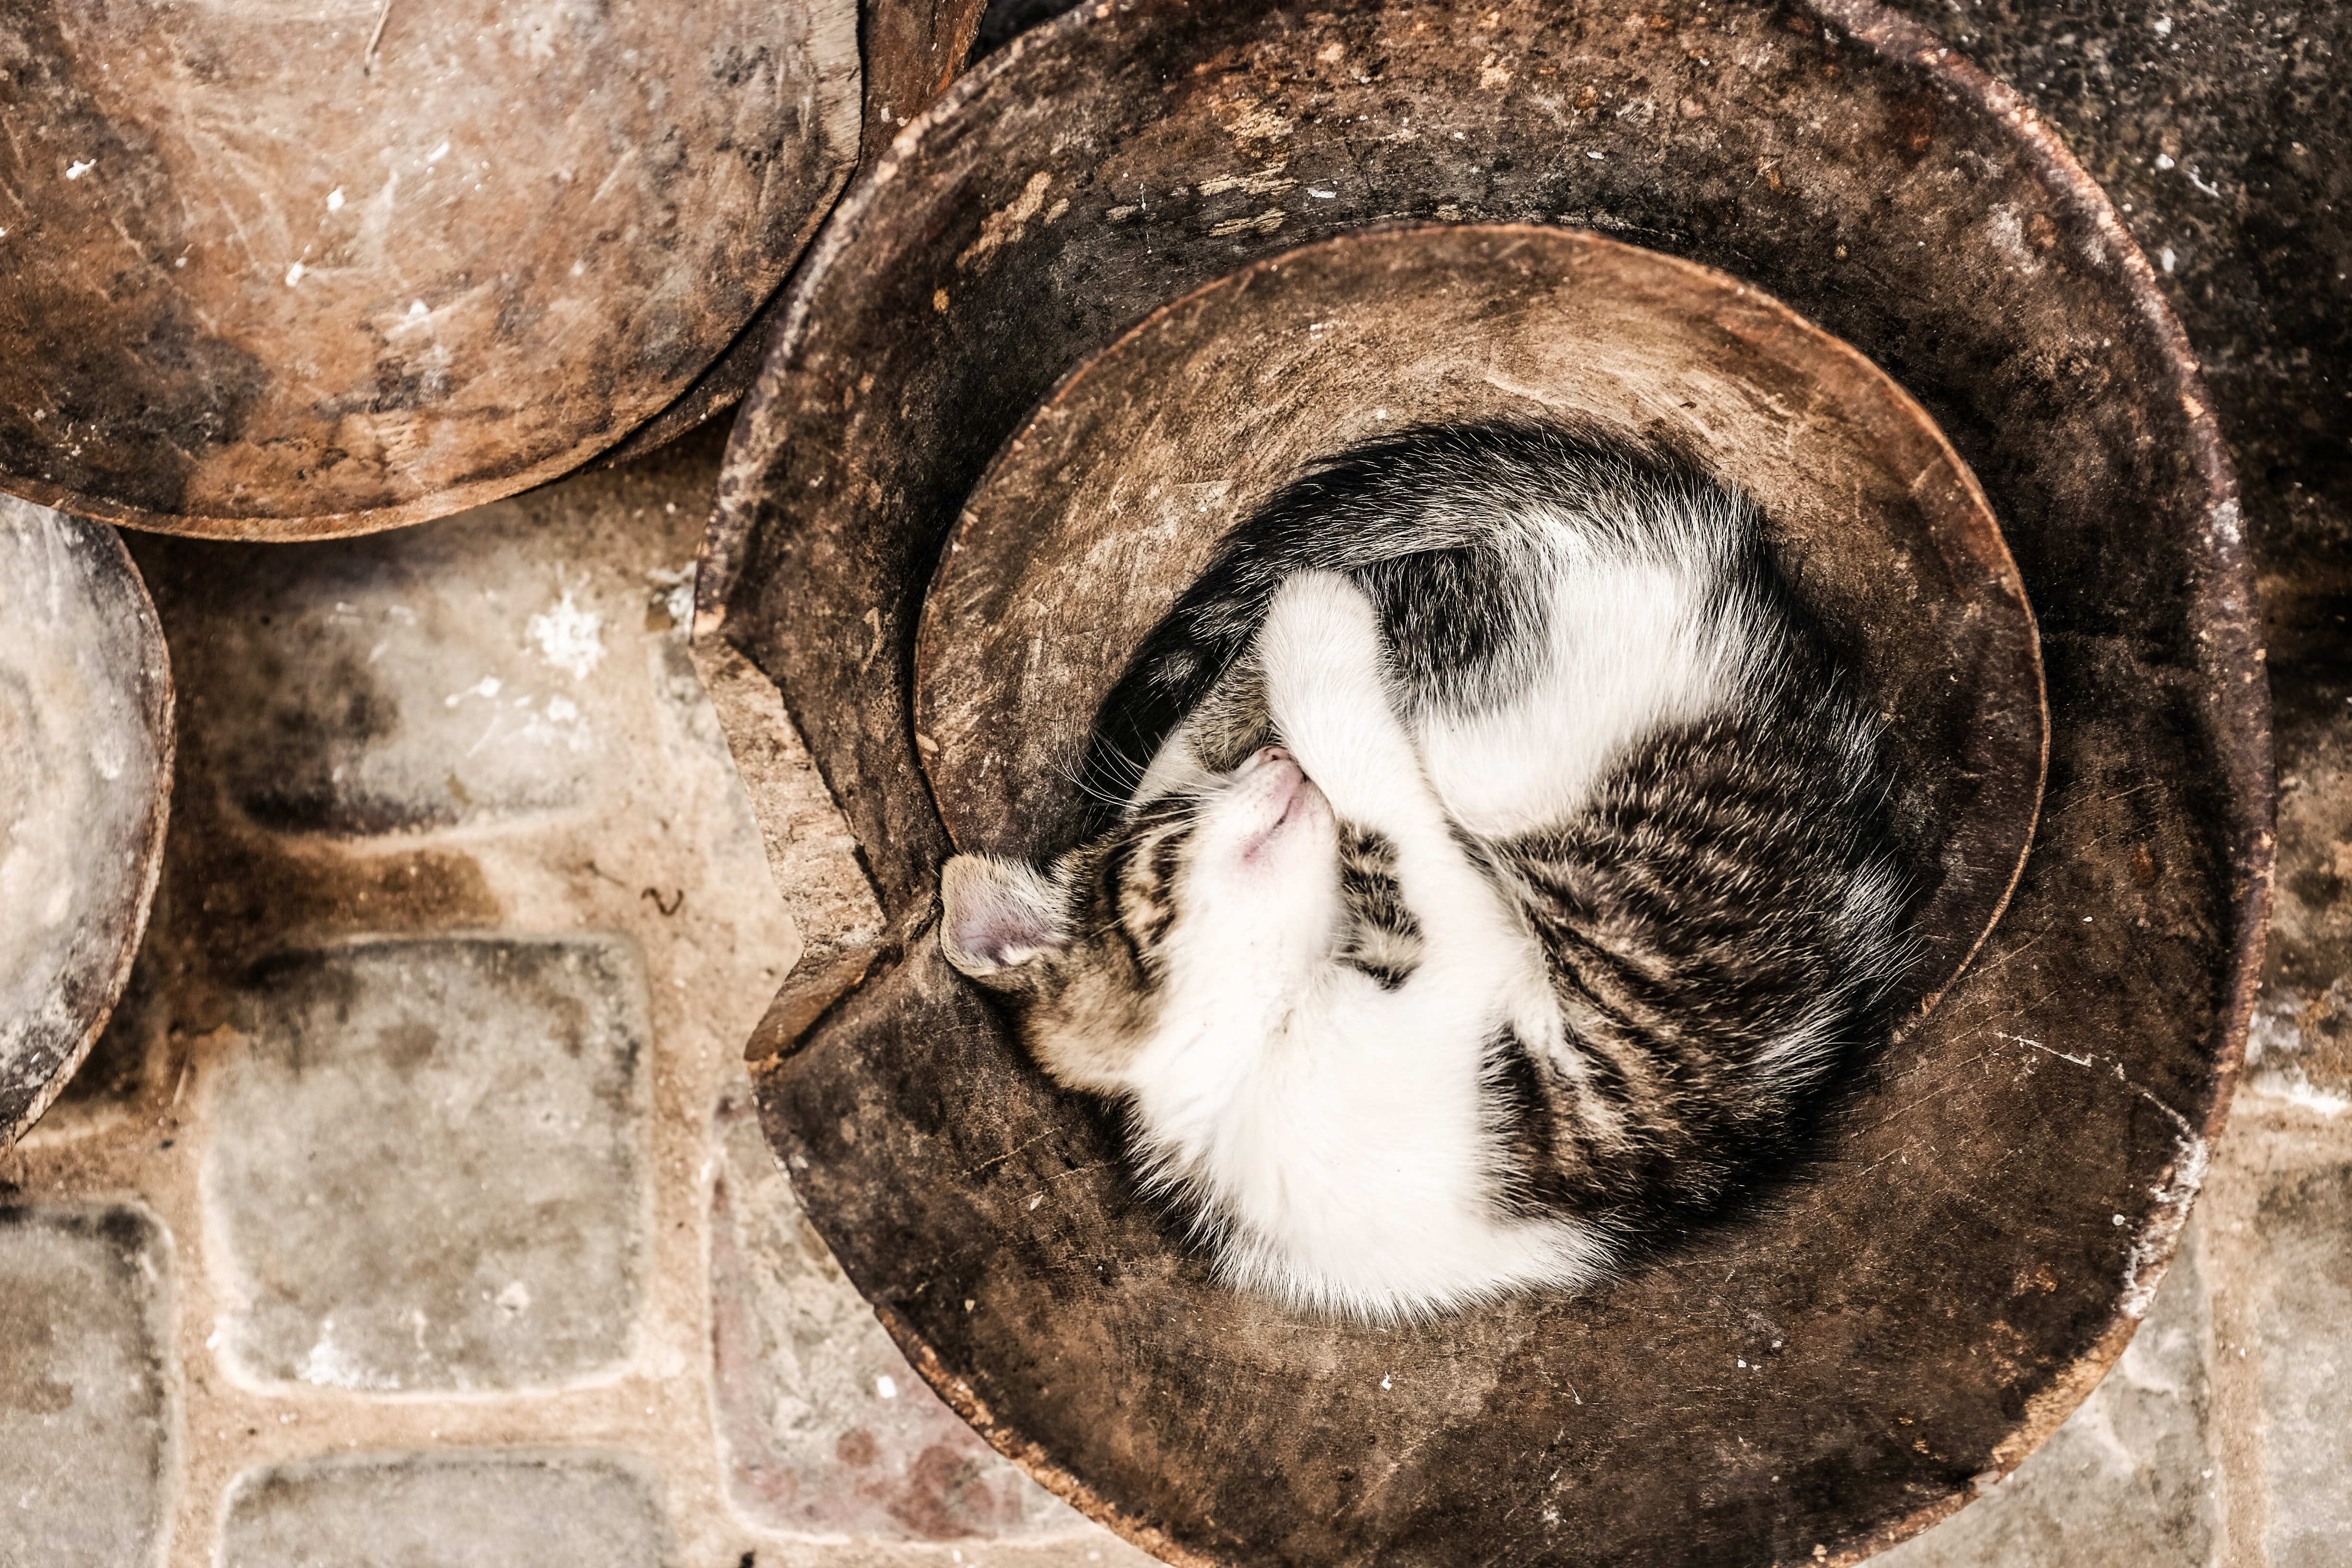 Brown and white kitten curled up sleeping in the bottom of a pot